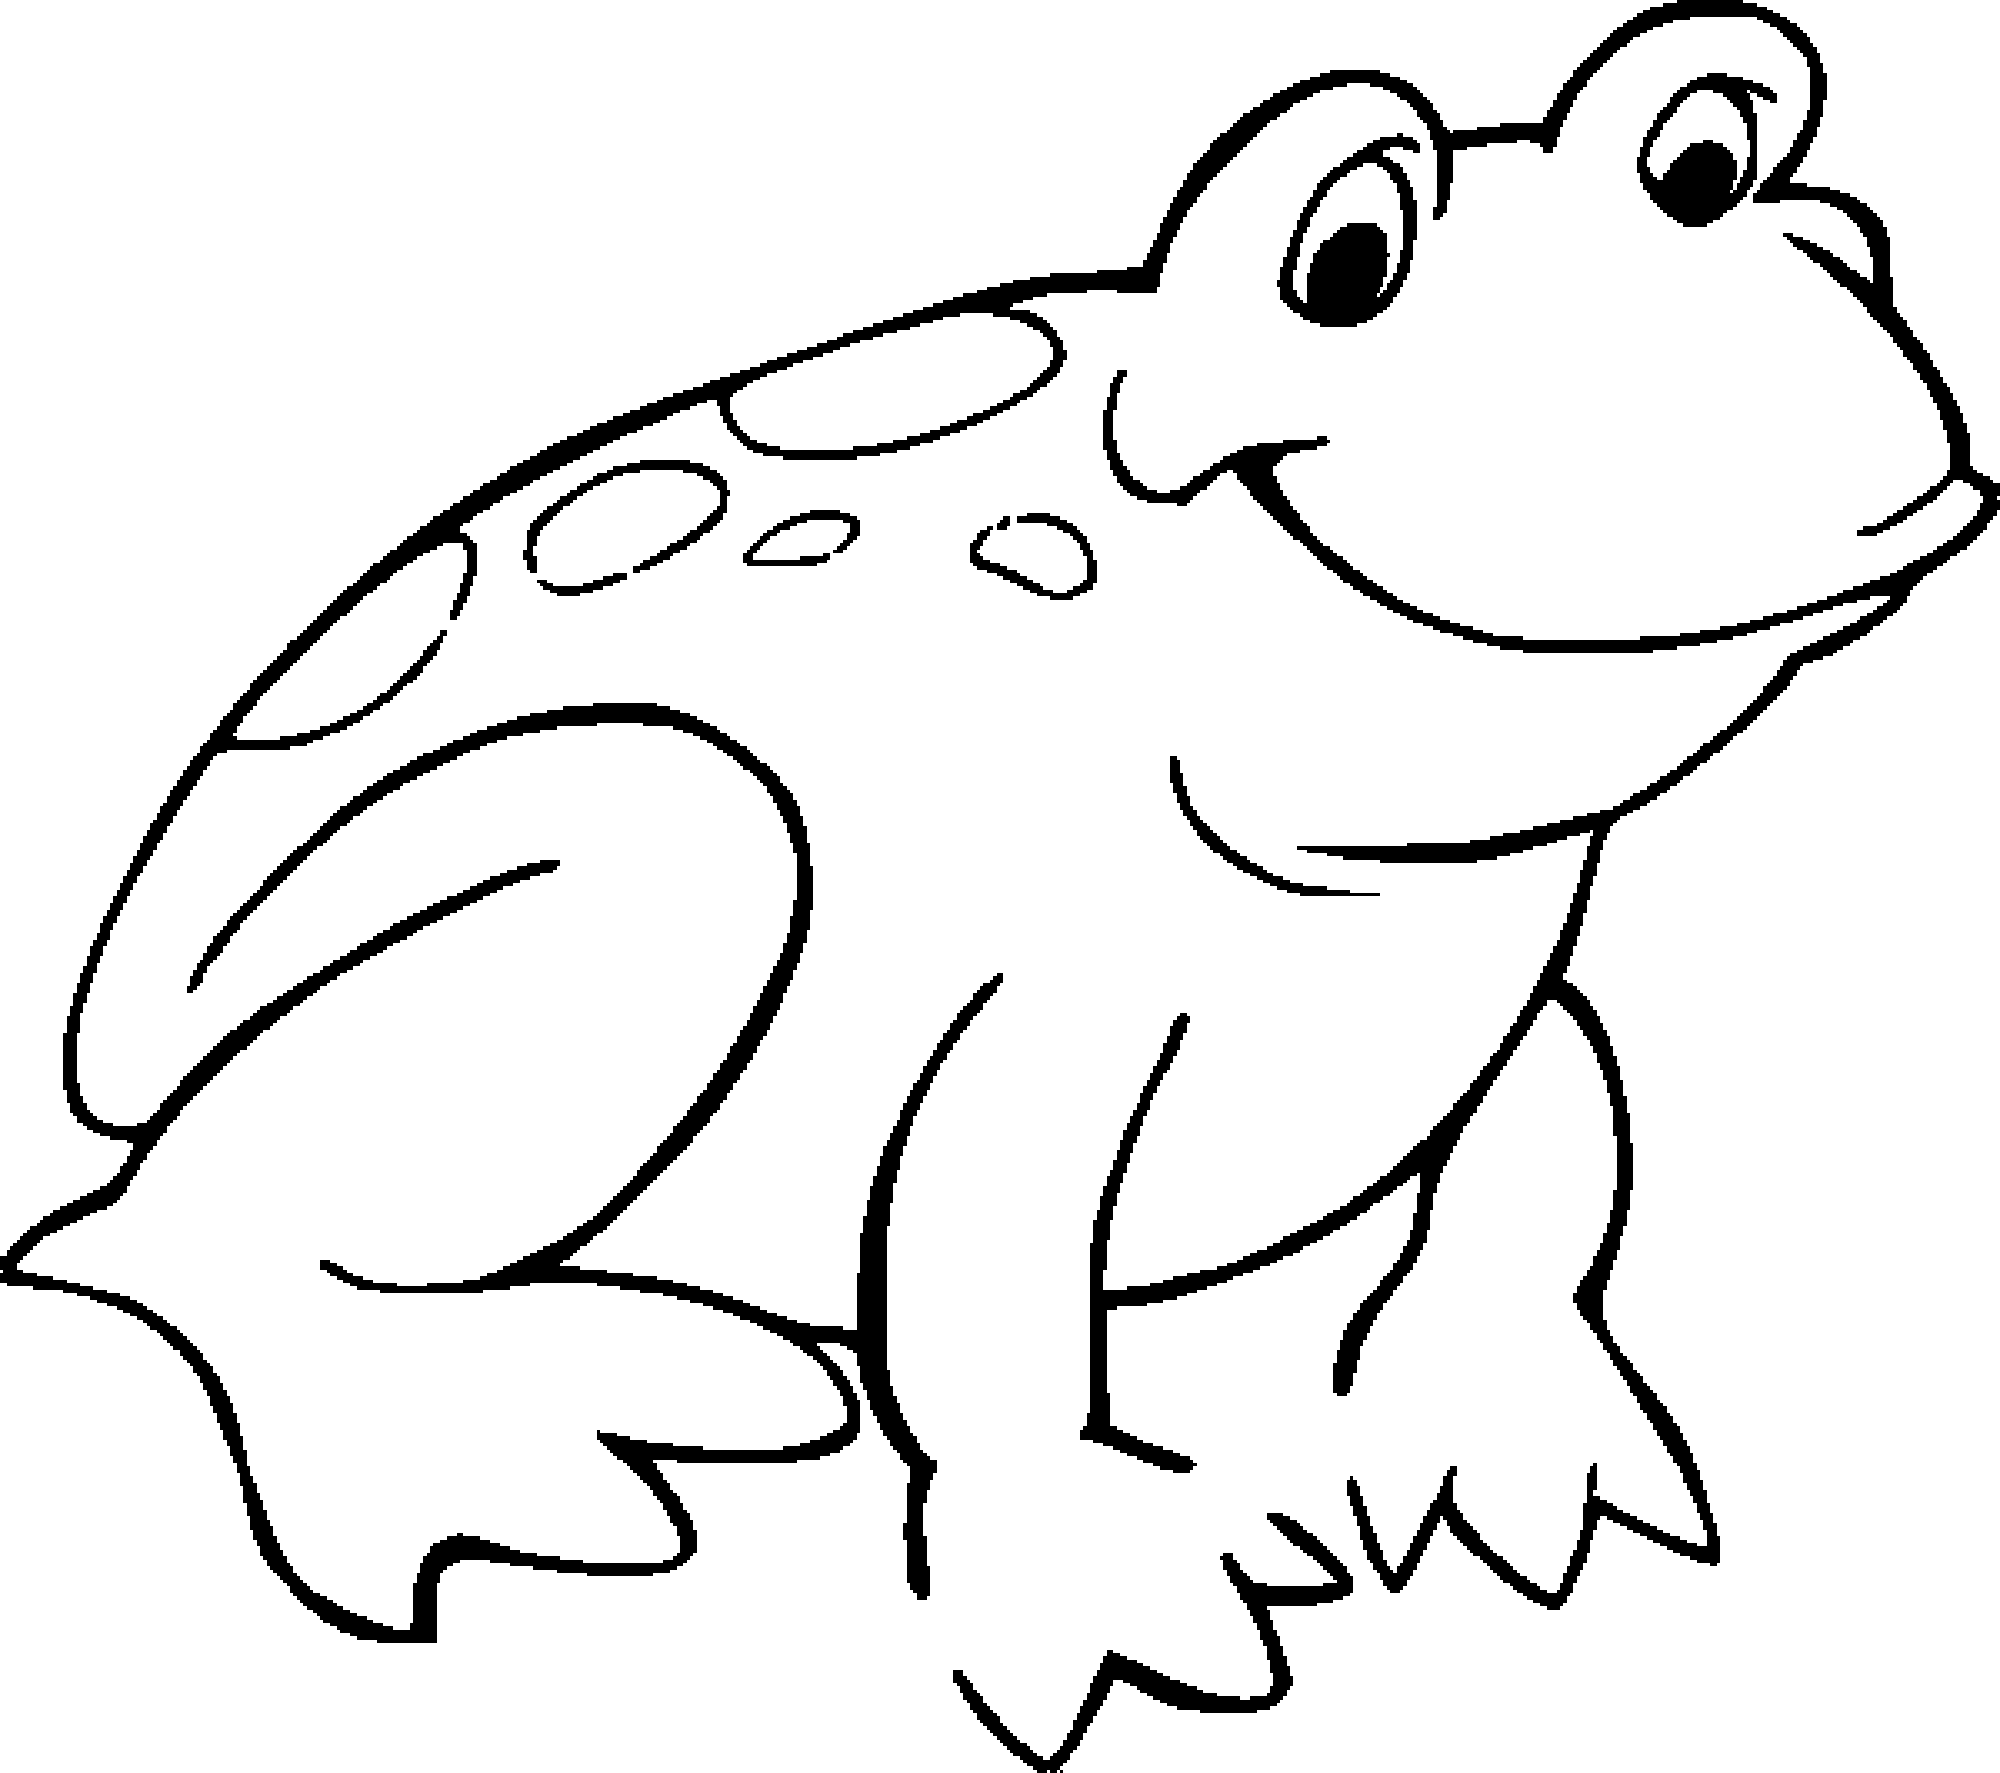 Frog Coloring Pages Printable Free Coloring Sheets Frog Coloring Pages Animal Coloring Pages Princess Coloring Pages